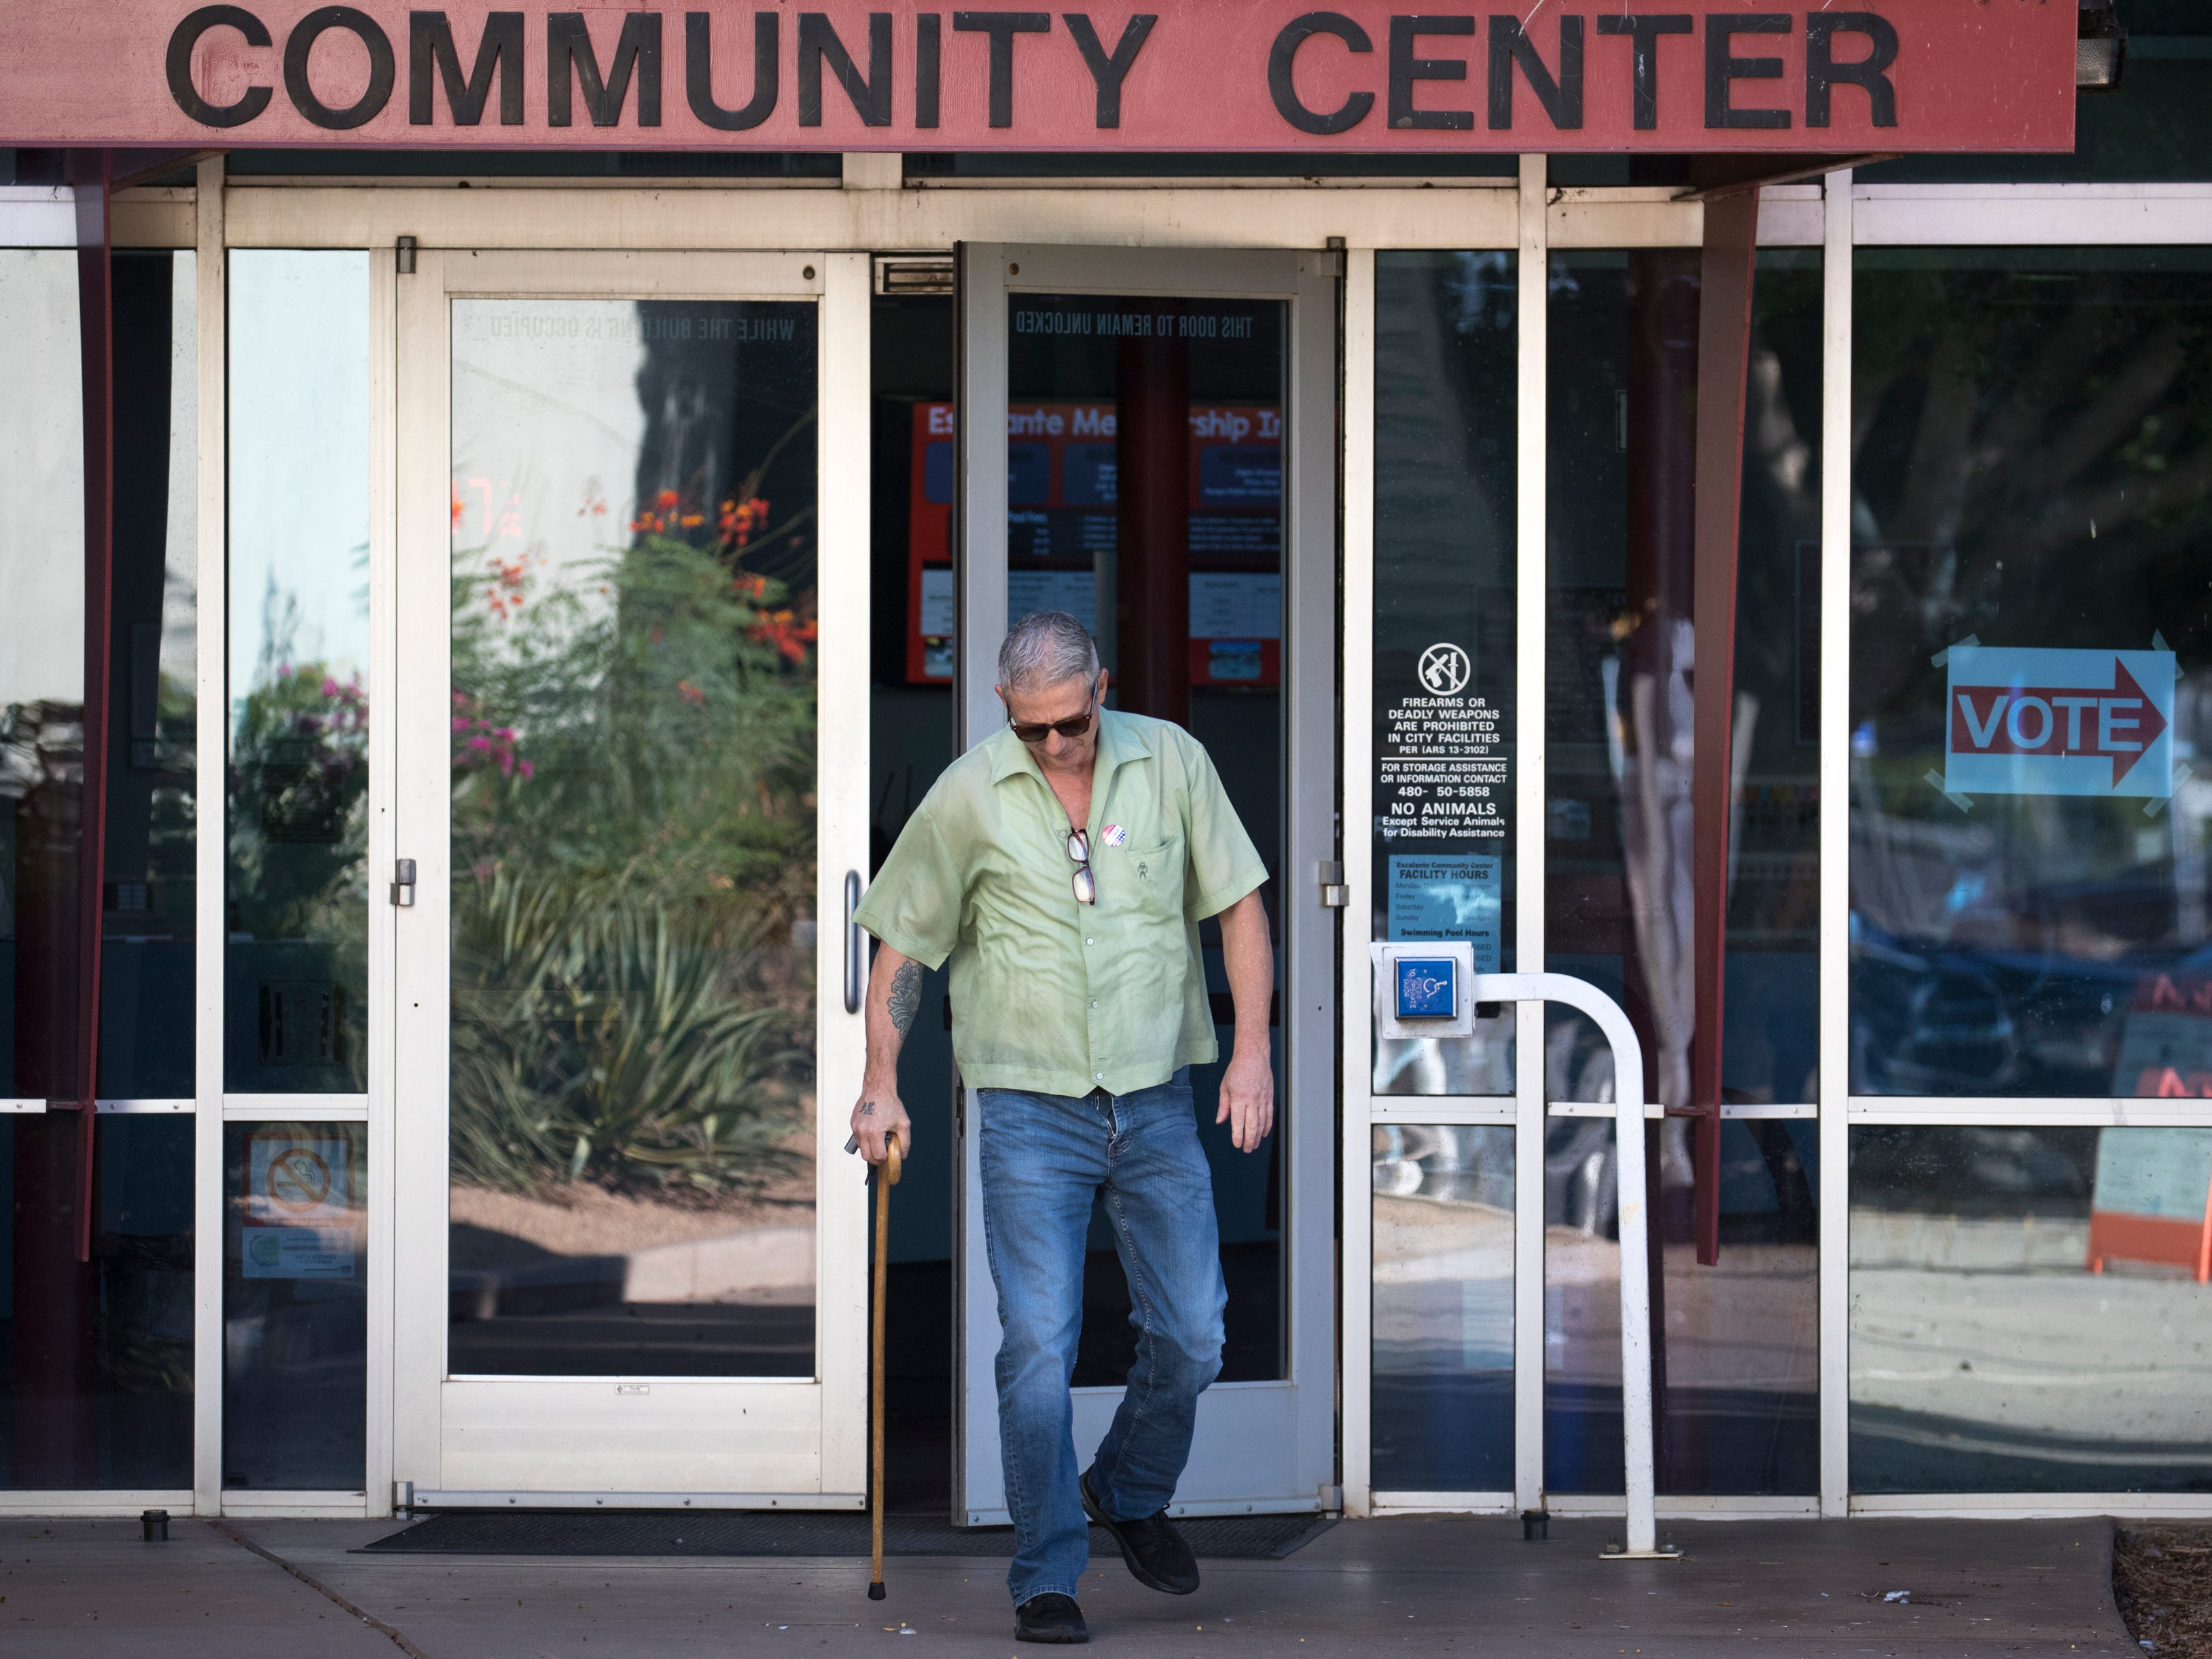 A voter leaves the polling place after casting his ballot, Aug. 28, 2018, at the Escalante Community Center, 2150 E. Orange Street in Tempe.